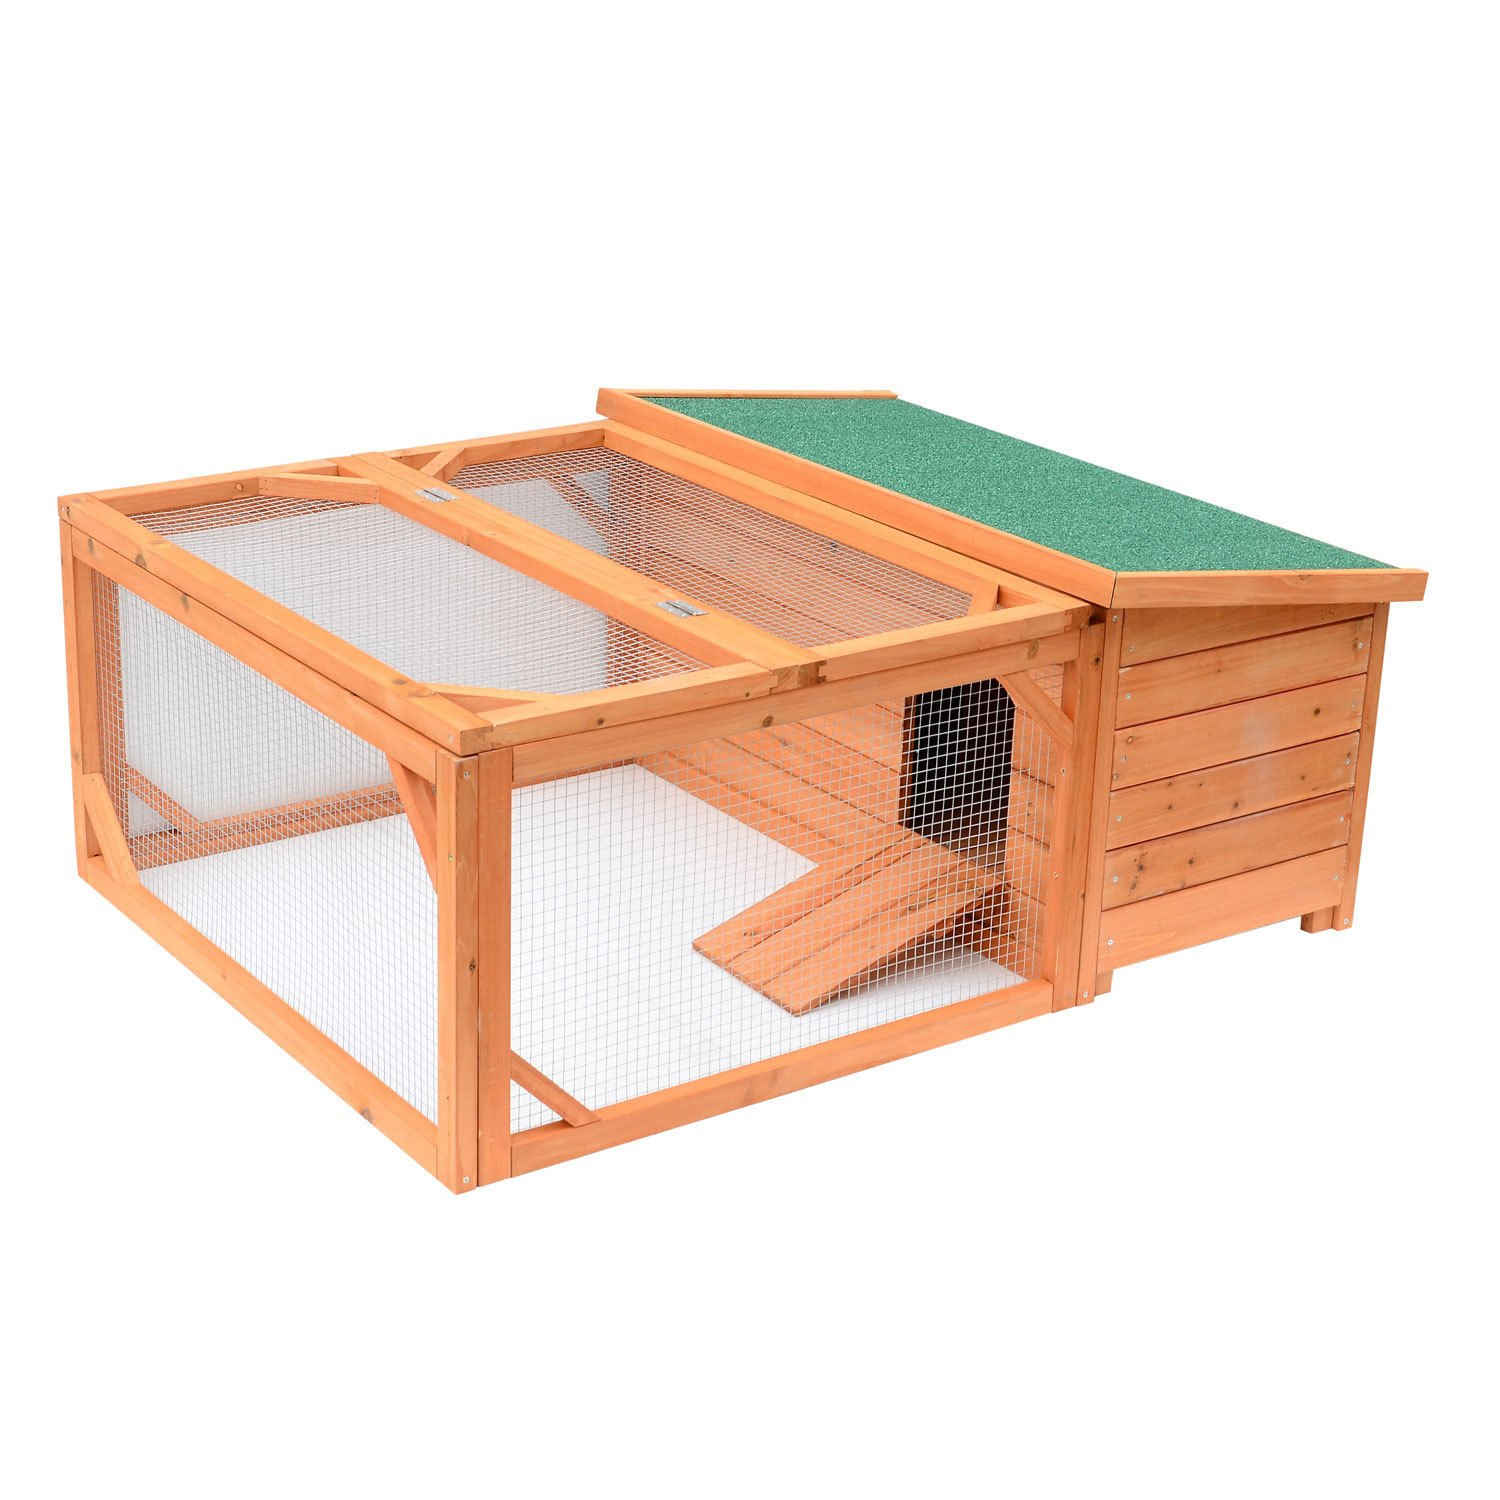 Pawhut Small Wooden Bunny Rabbit & Guinea Pig / Chicken Coop w/ Outdoor Run